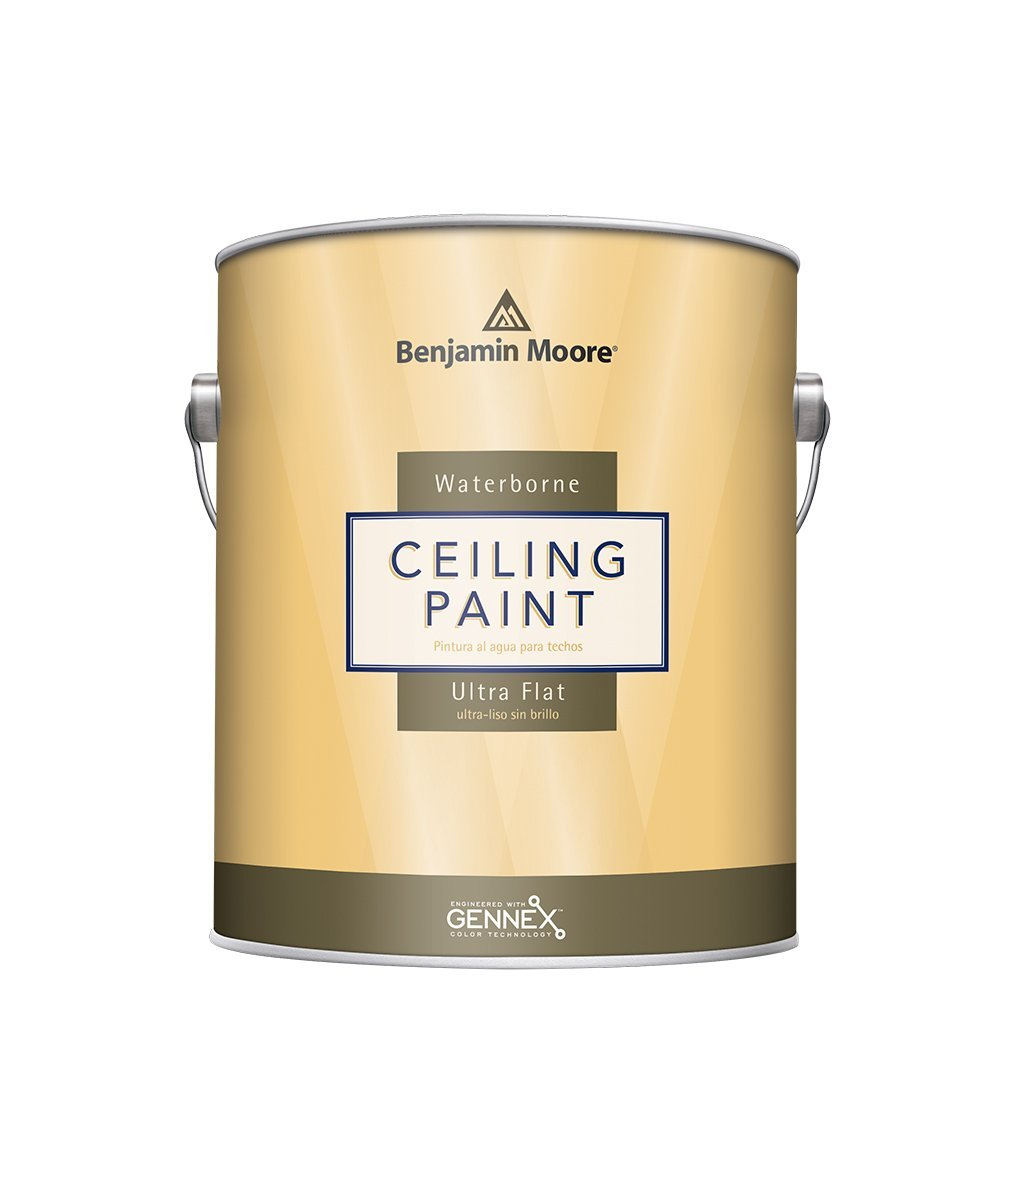 Benjamin Moore Waterborne Ceiling Paint available at Mallory Paint Stores.